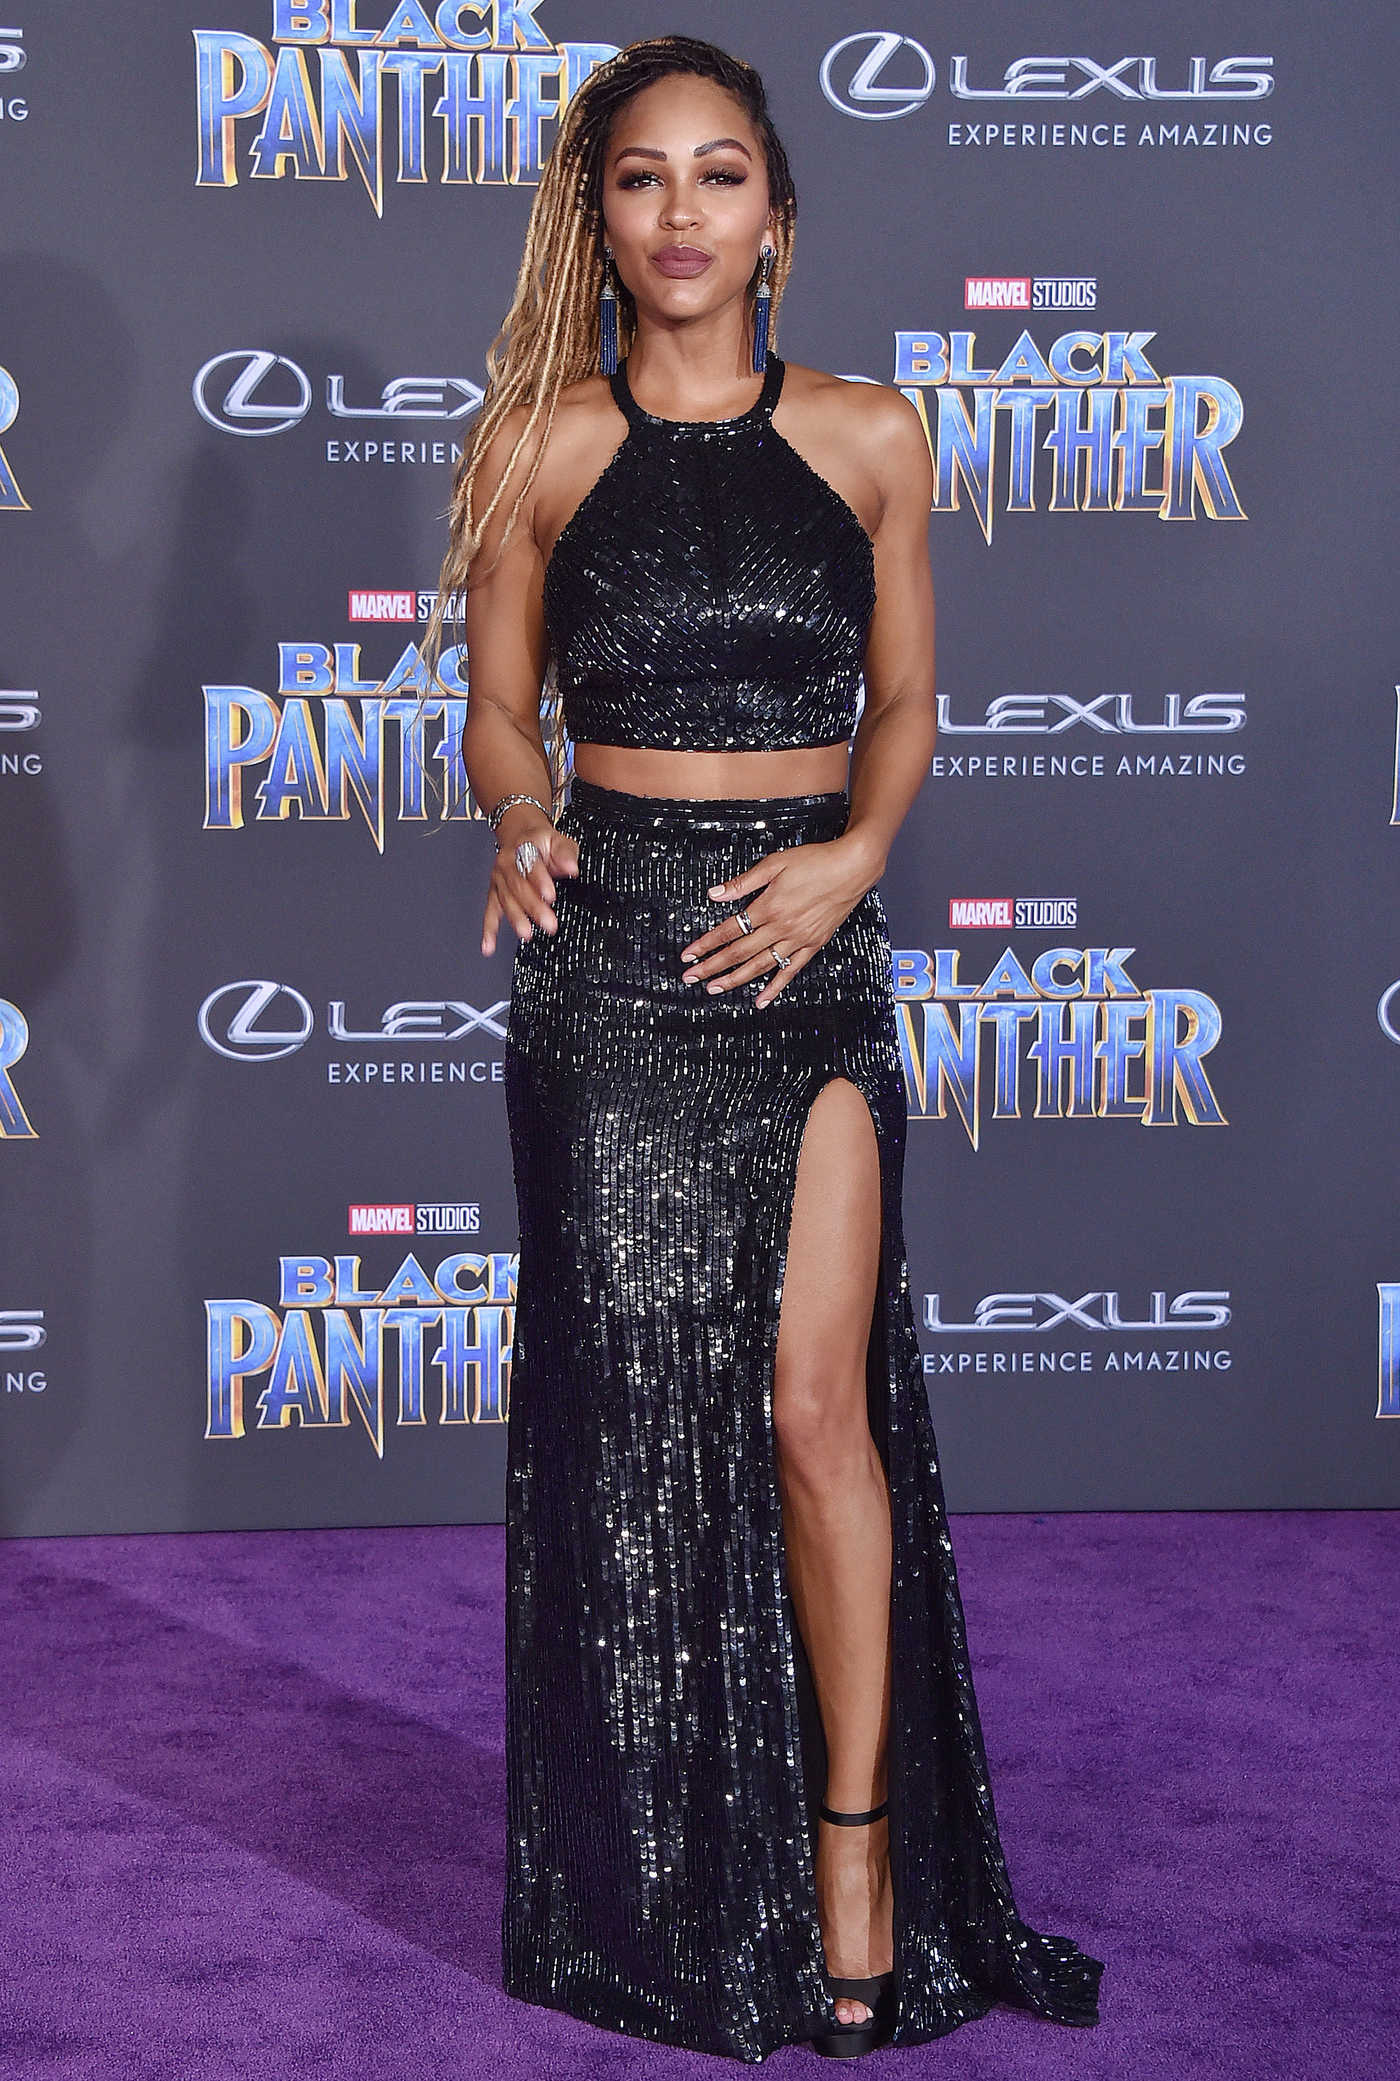 Meagan Good at the Black Panther Premiere in Hollywood 01/29/2018